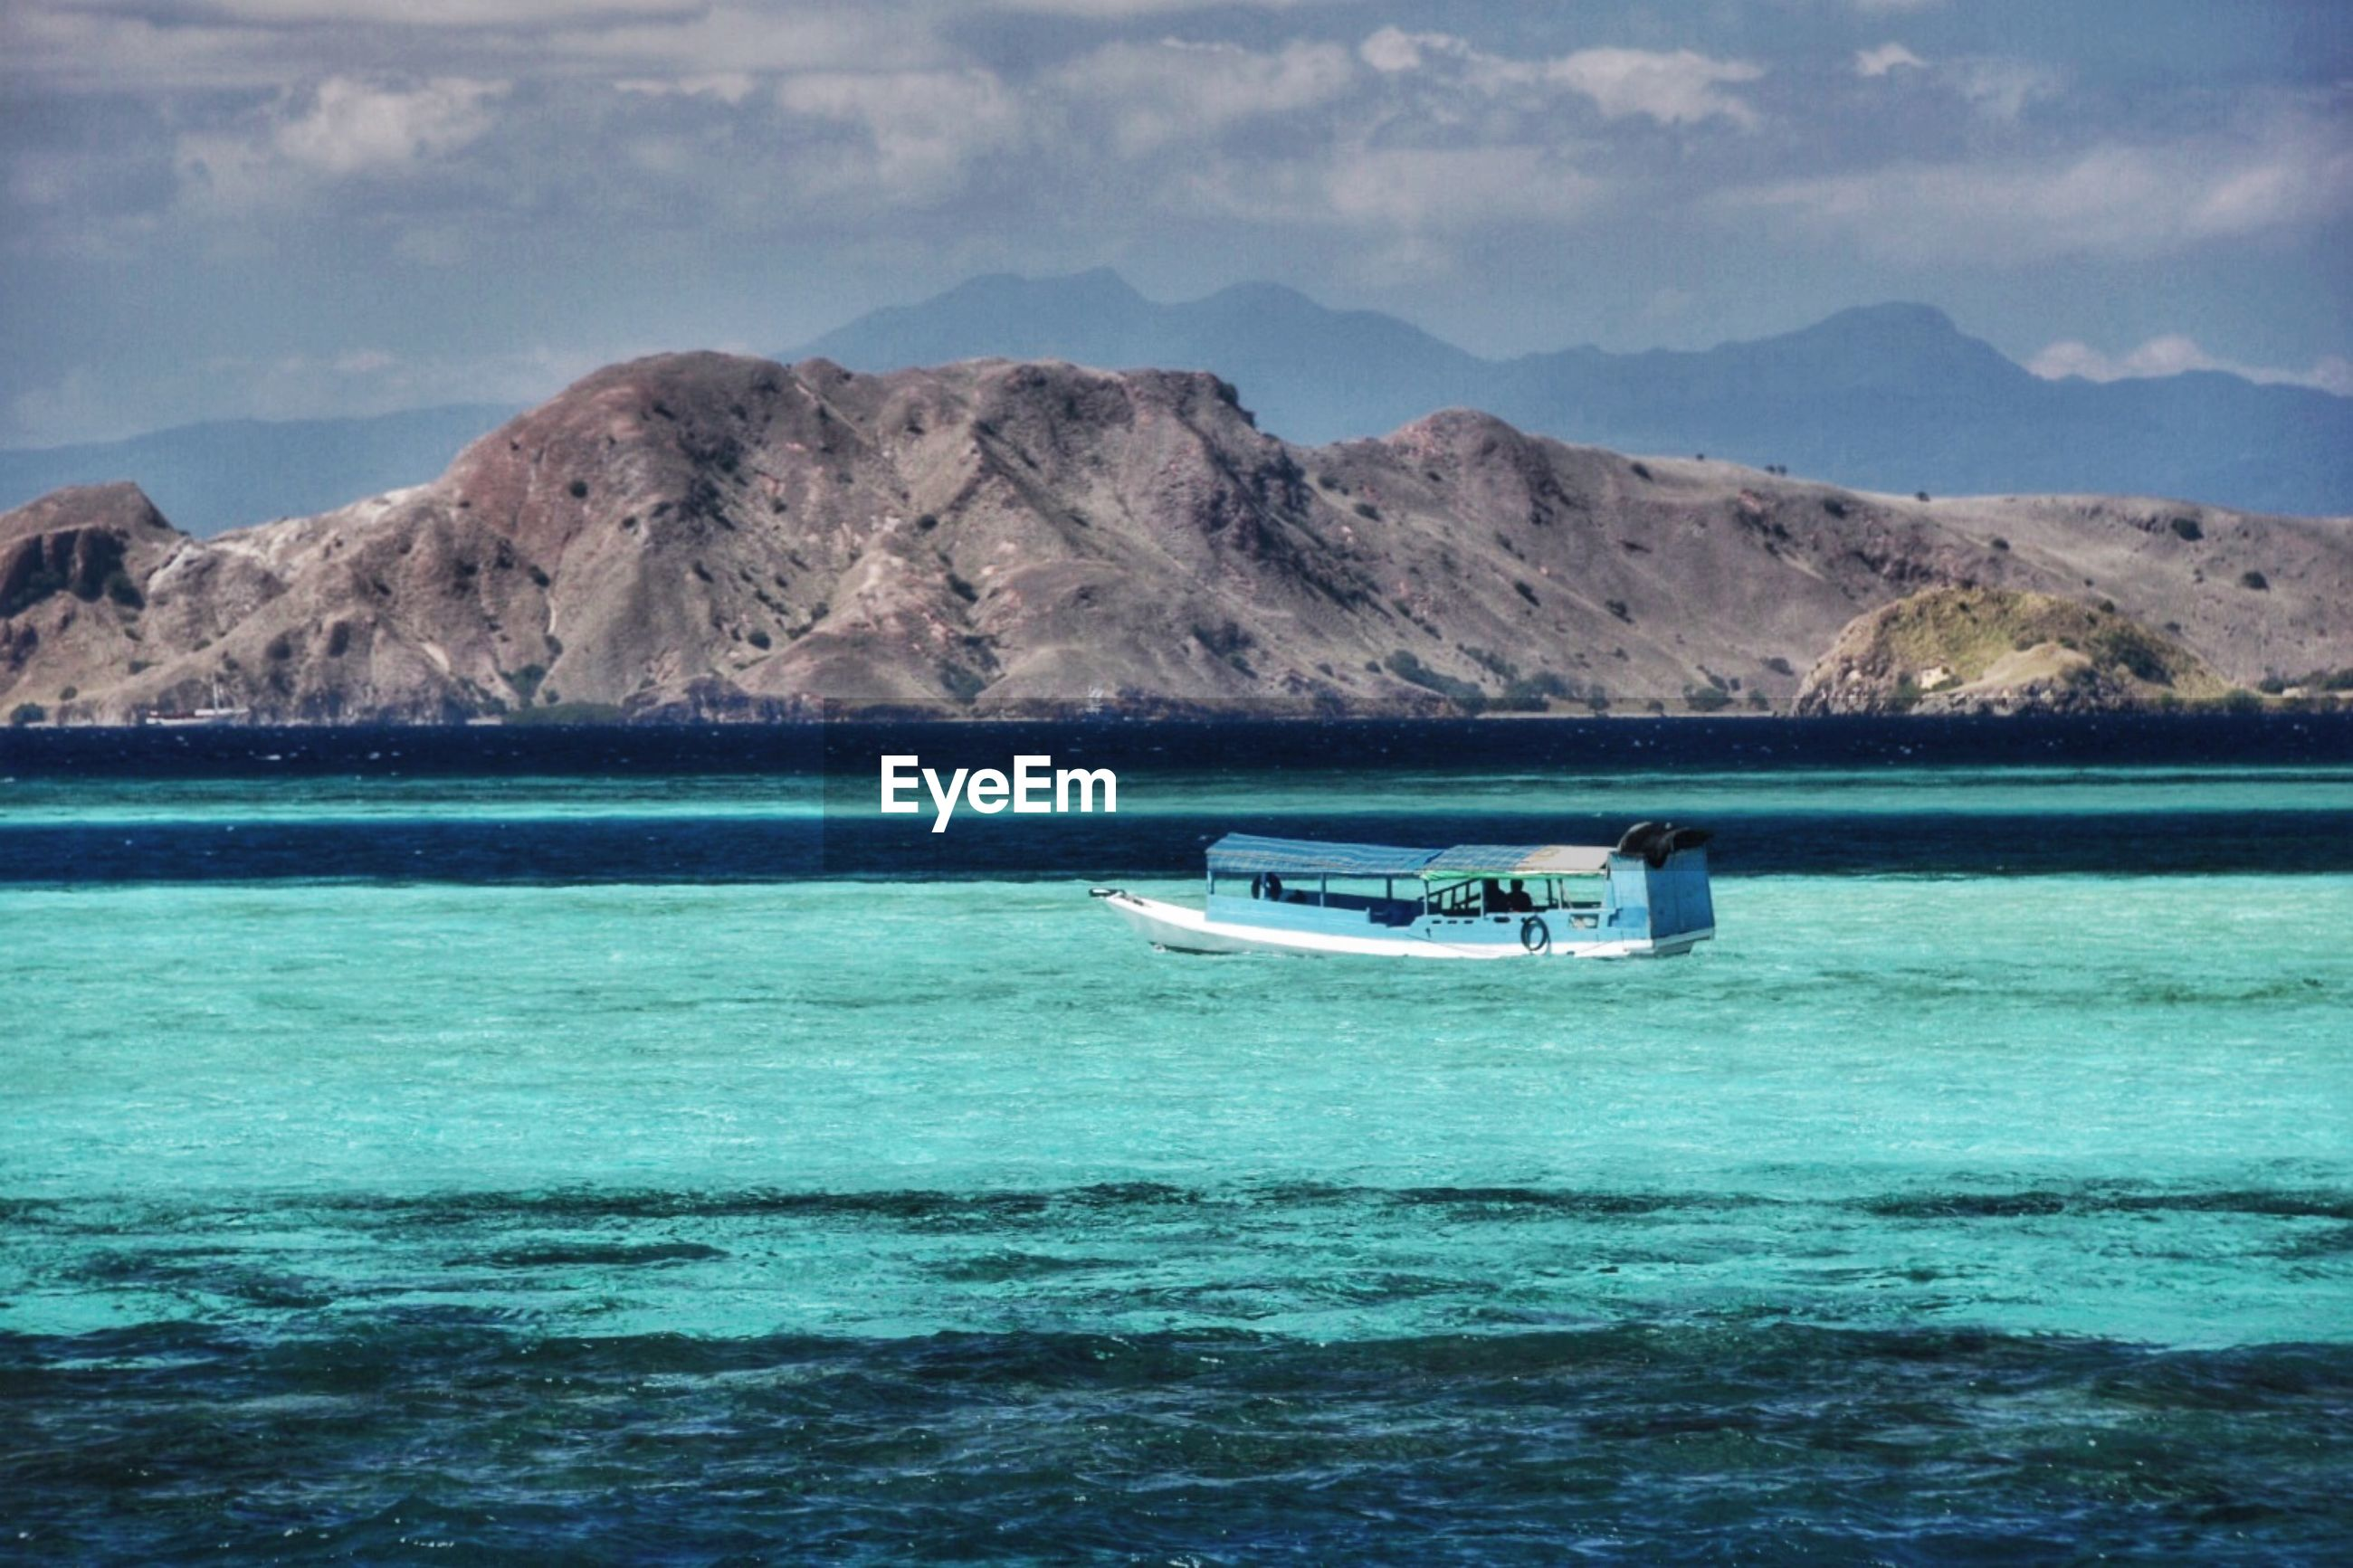 BOAT IN SEA AGAINST MOUNTAINS